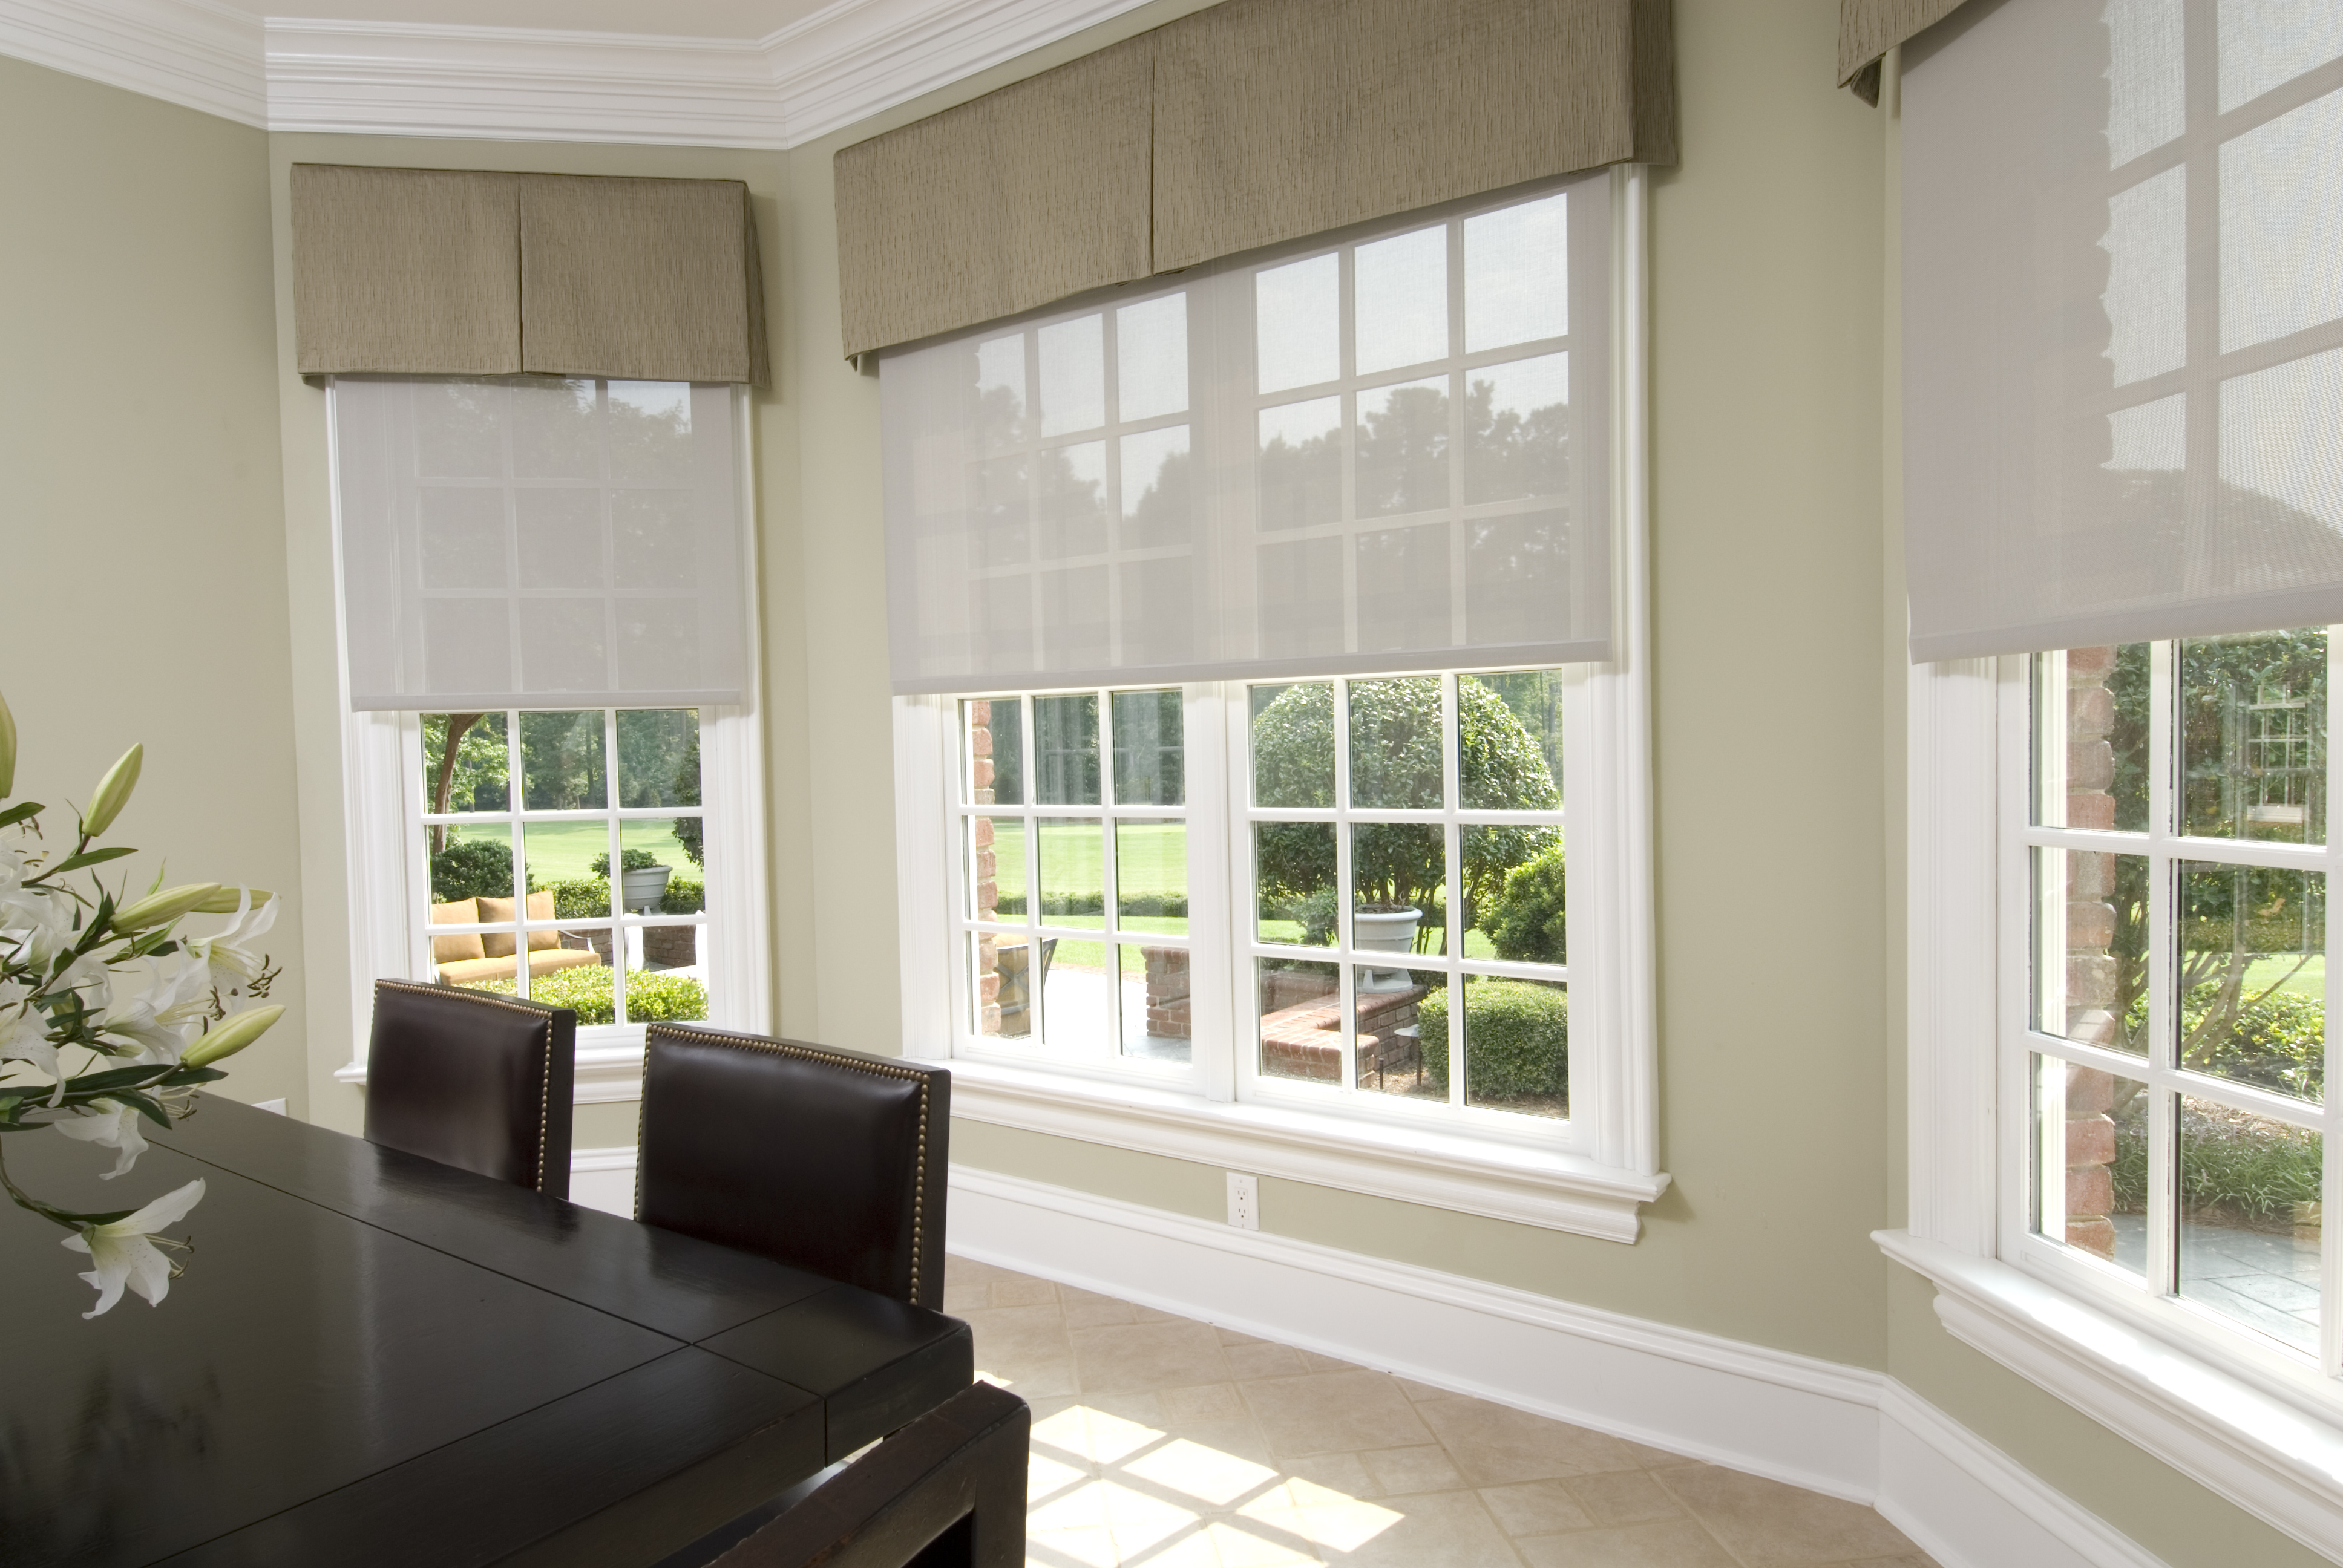 Commercial shades blinds window treatments at the home for Motorized shades home depot